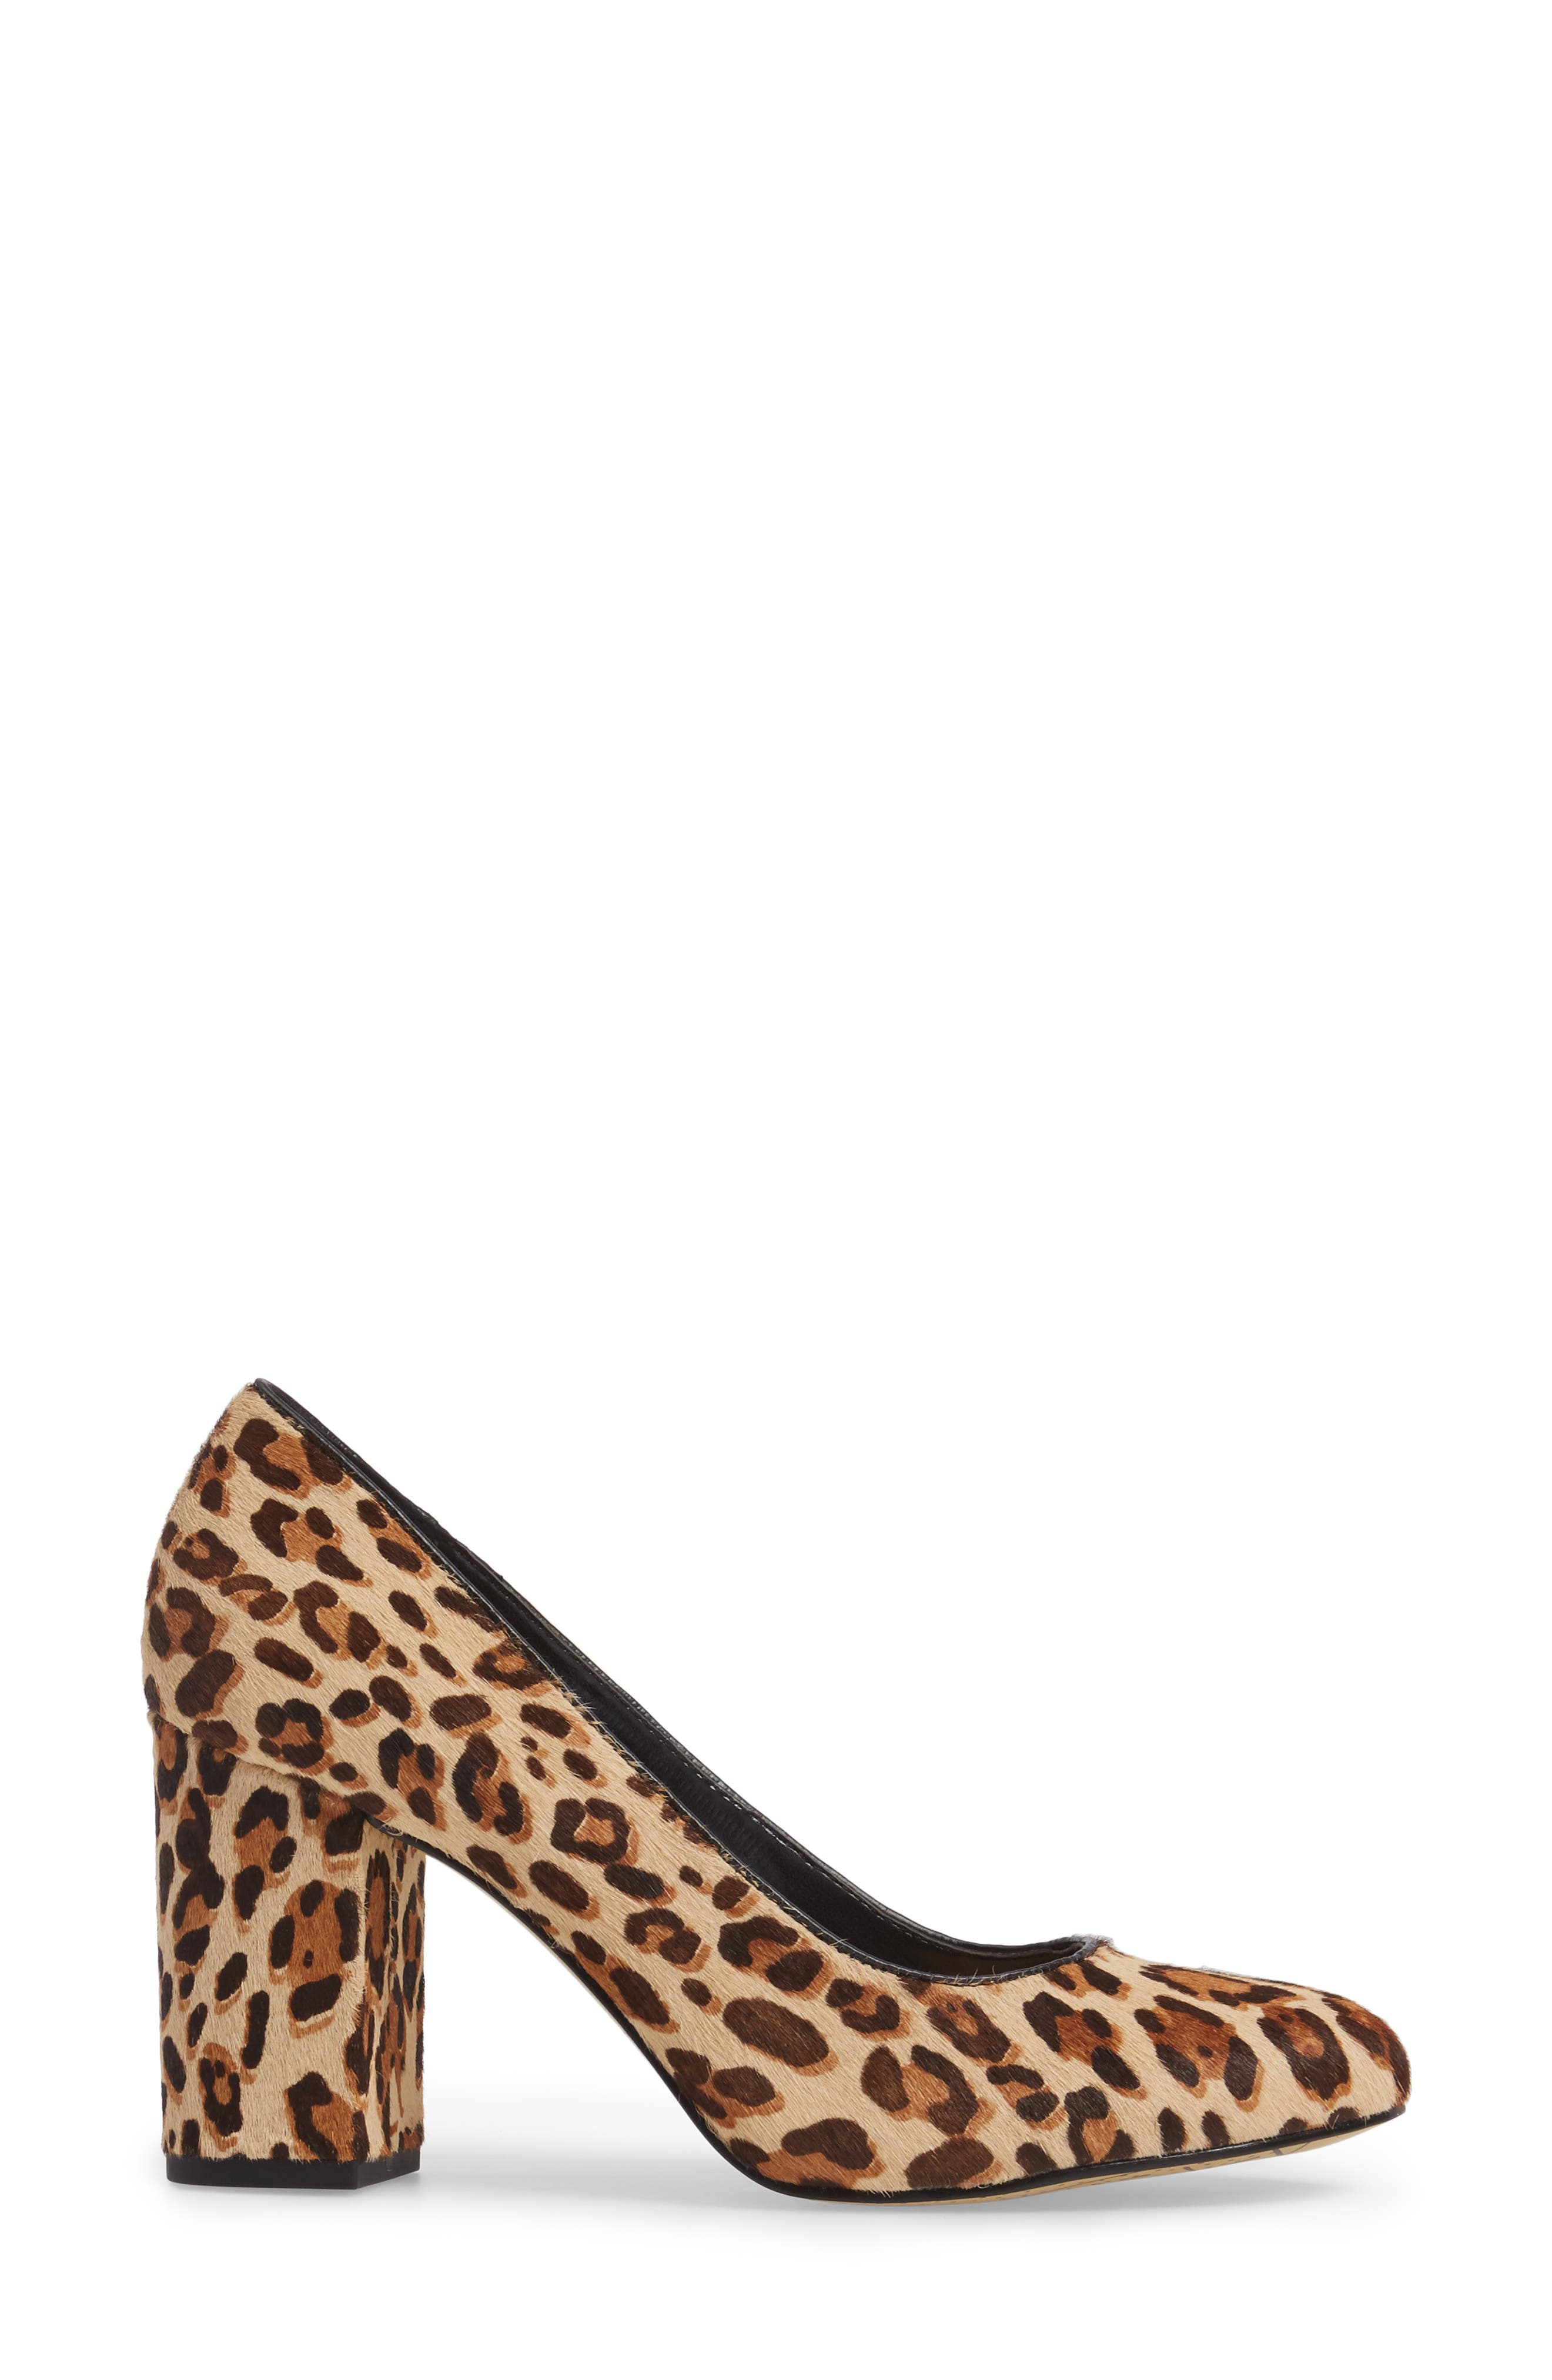 'Nara' Block Heel Pump,                             Alternate thumbnail 3, color,                             Leopard Pony Calf Hair